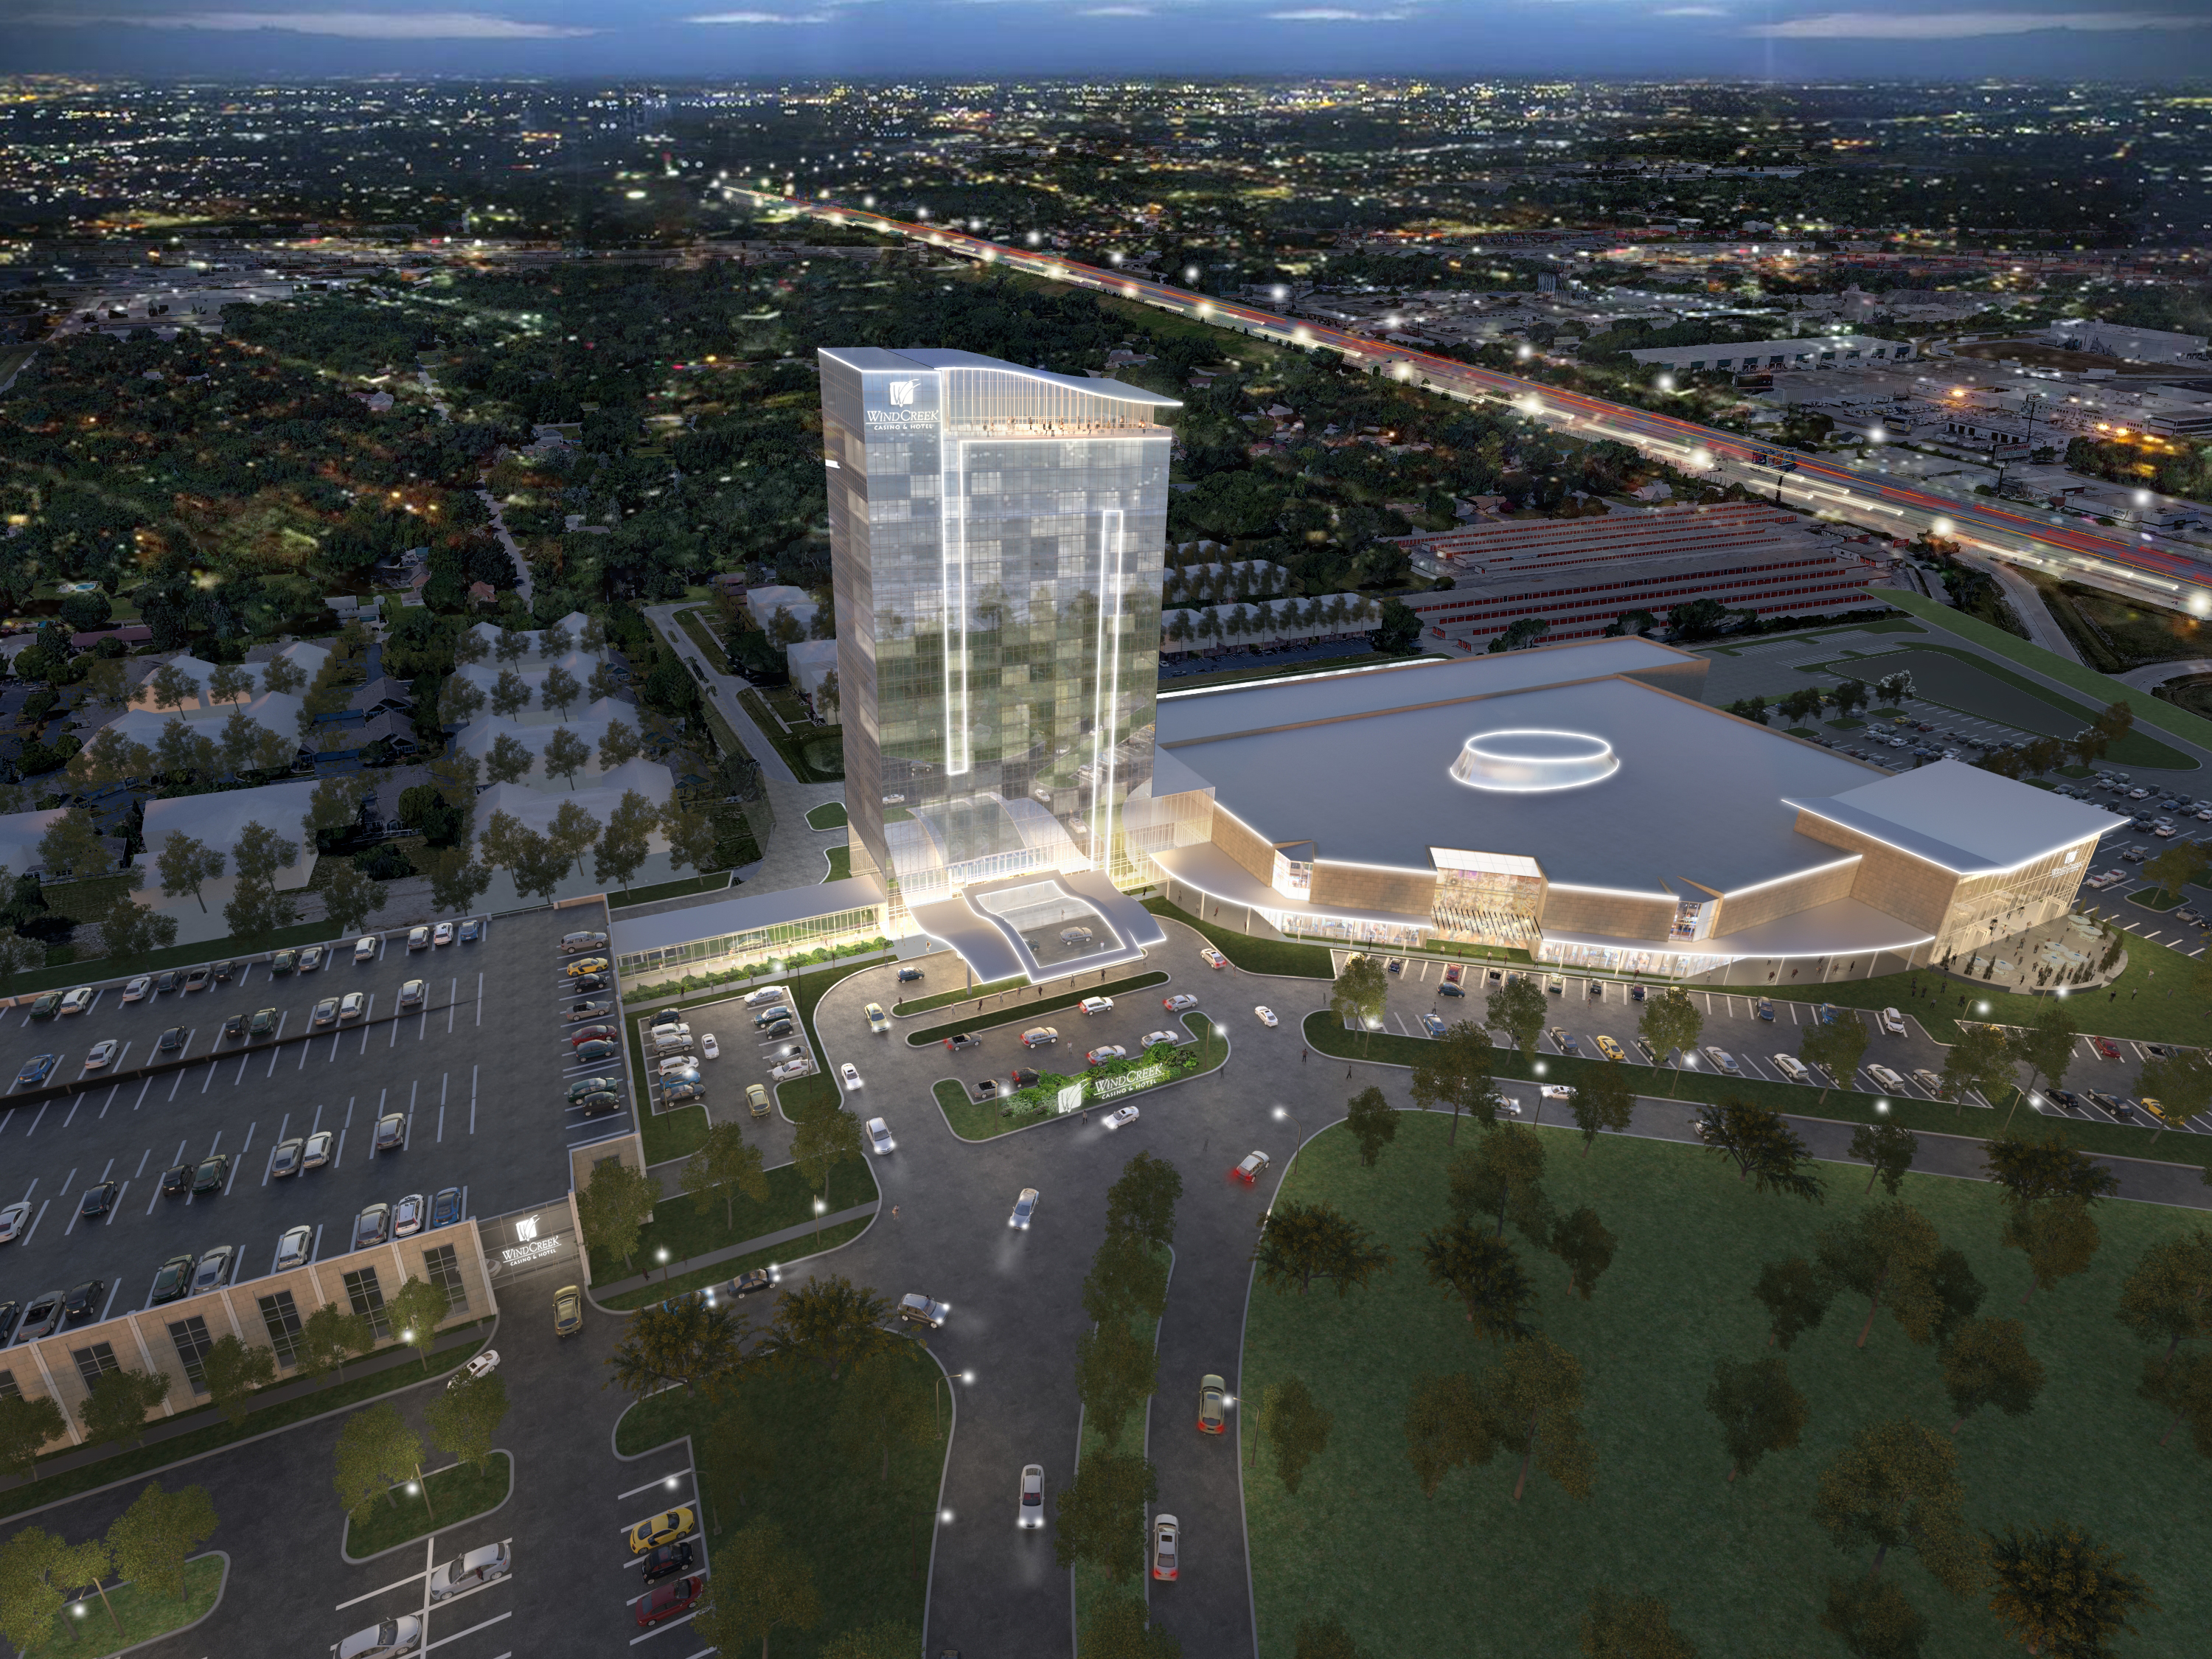 Artist's rendering of a casino proposed by Wind Creek Hospitality just off Interstate 80 near 175h Street and Halsted, straddling the border of suburban Homewood and East Hazel Crest.